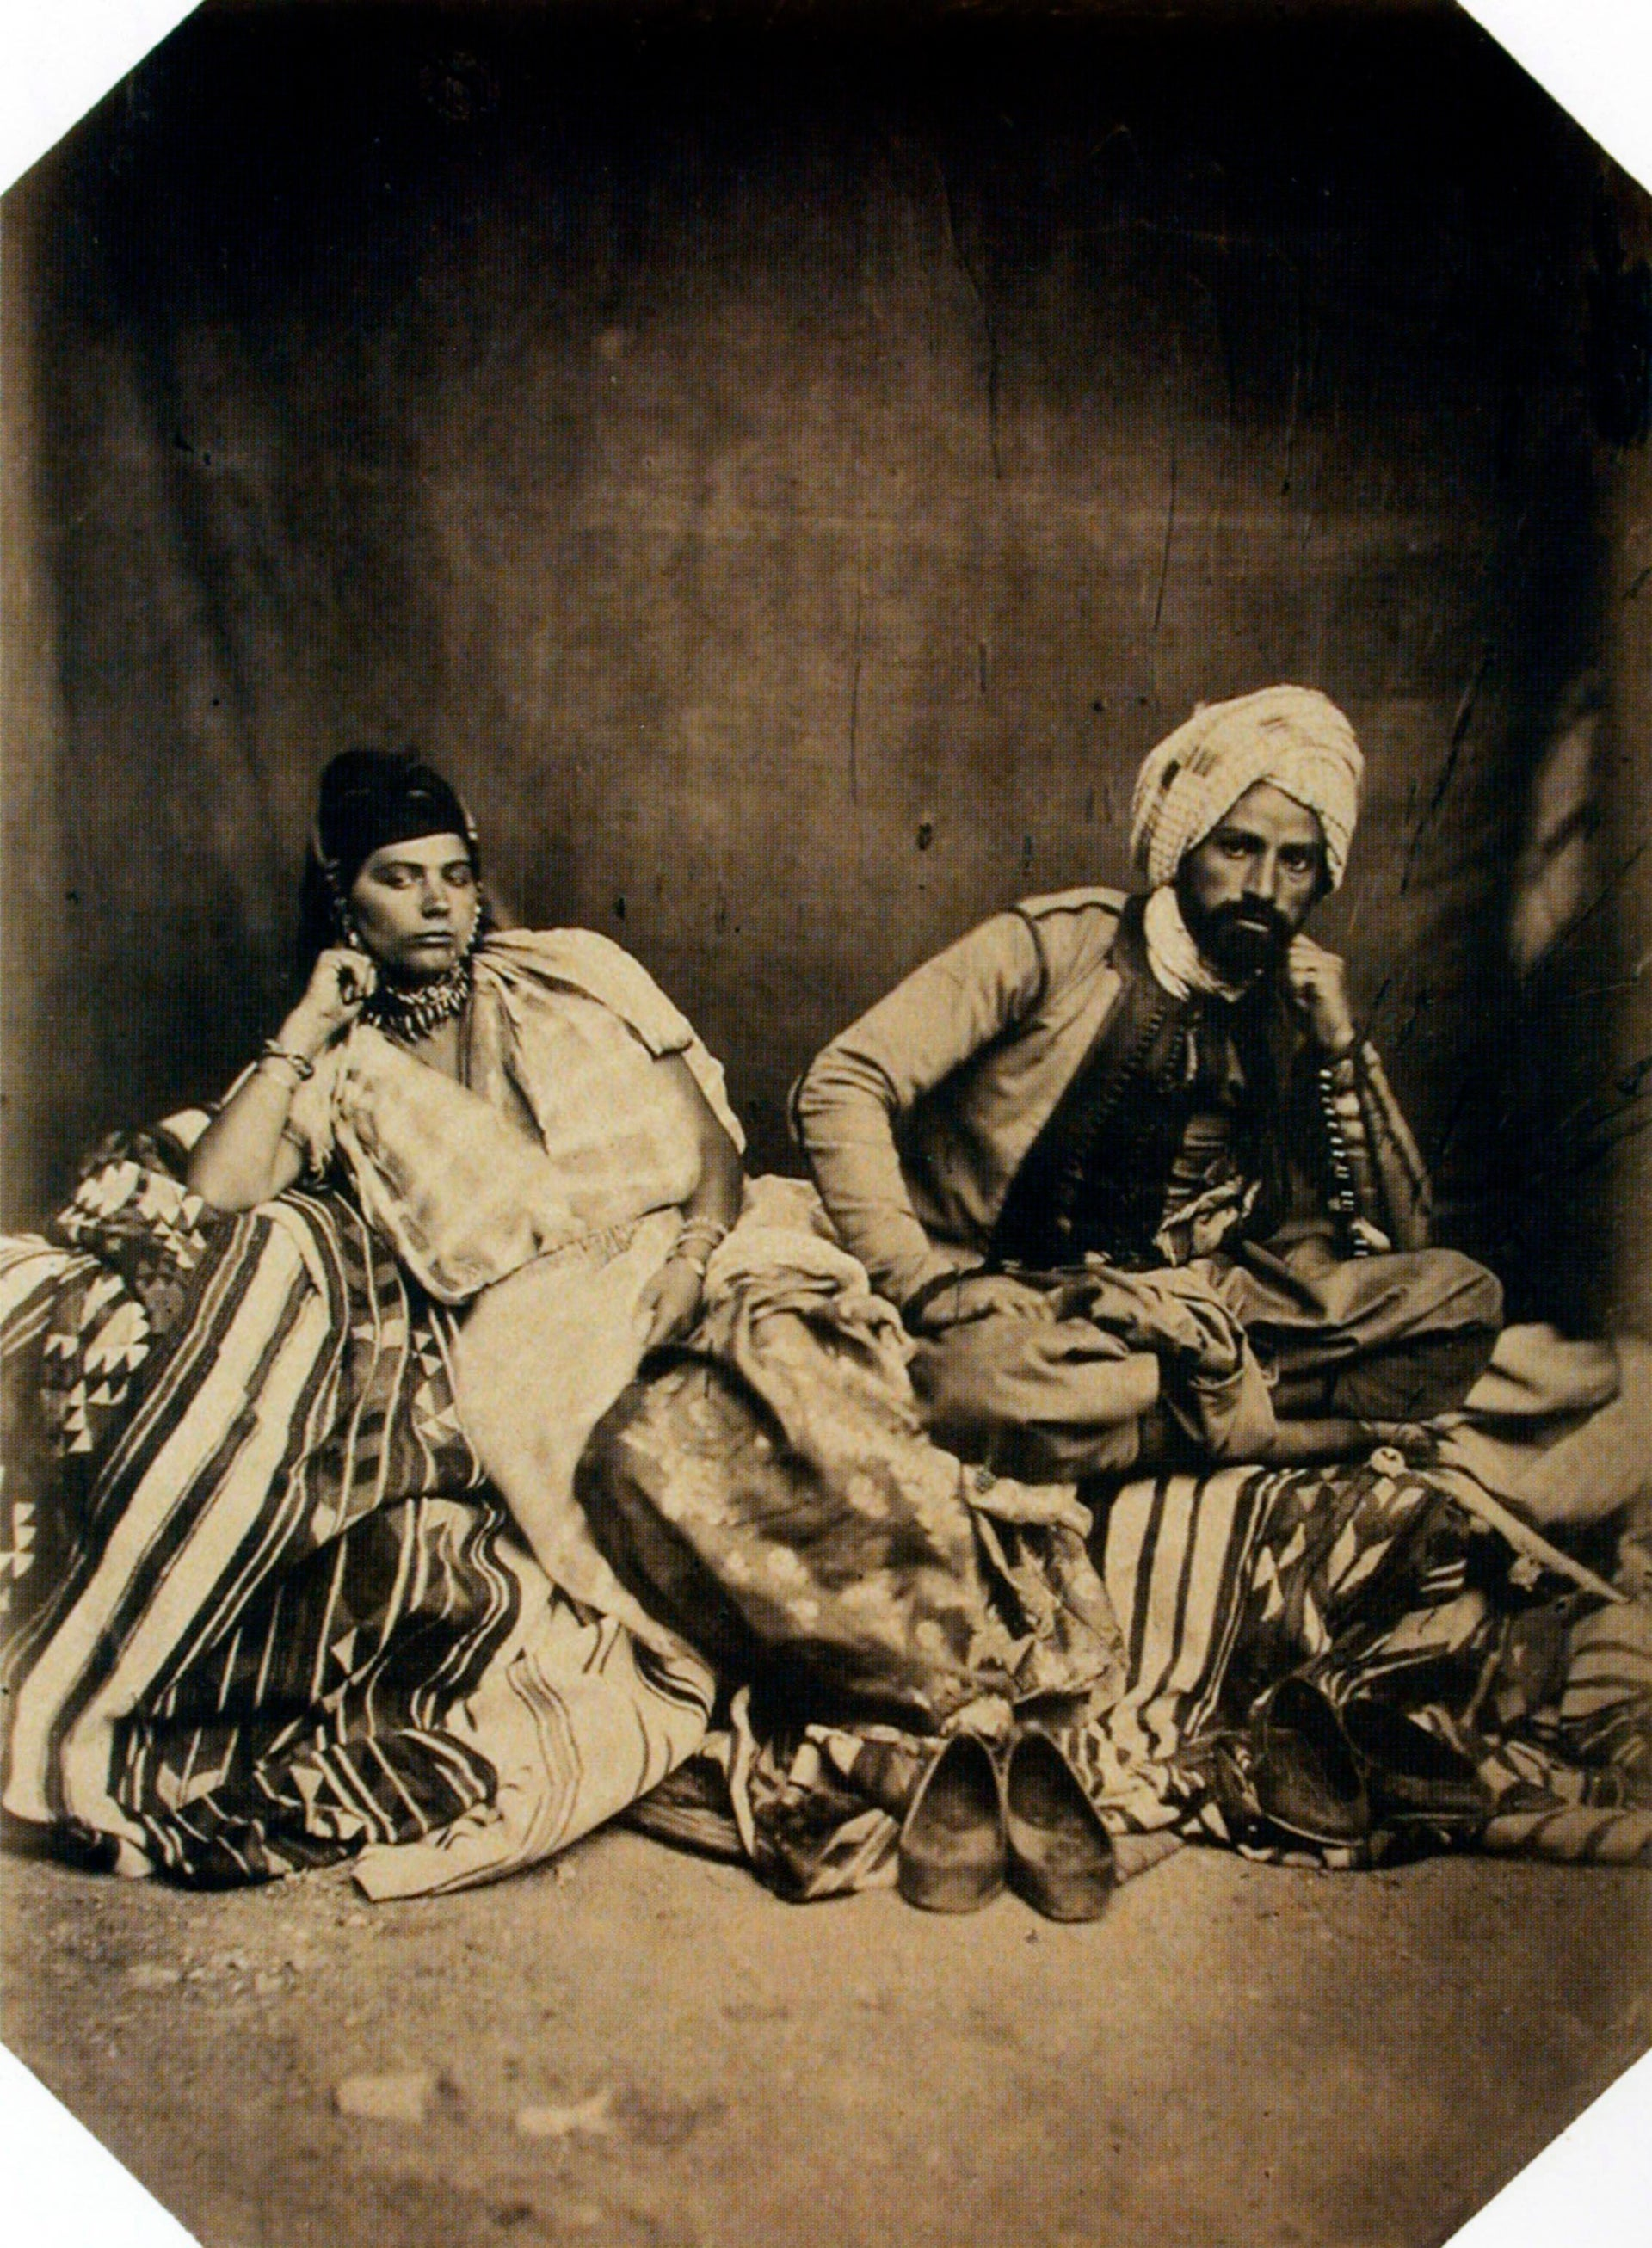 A Jewish couple from Algeria in the middle of the 19th century.